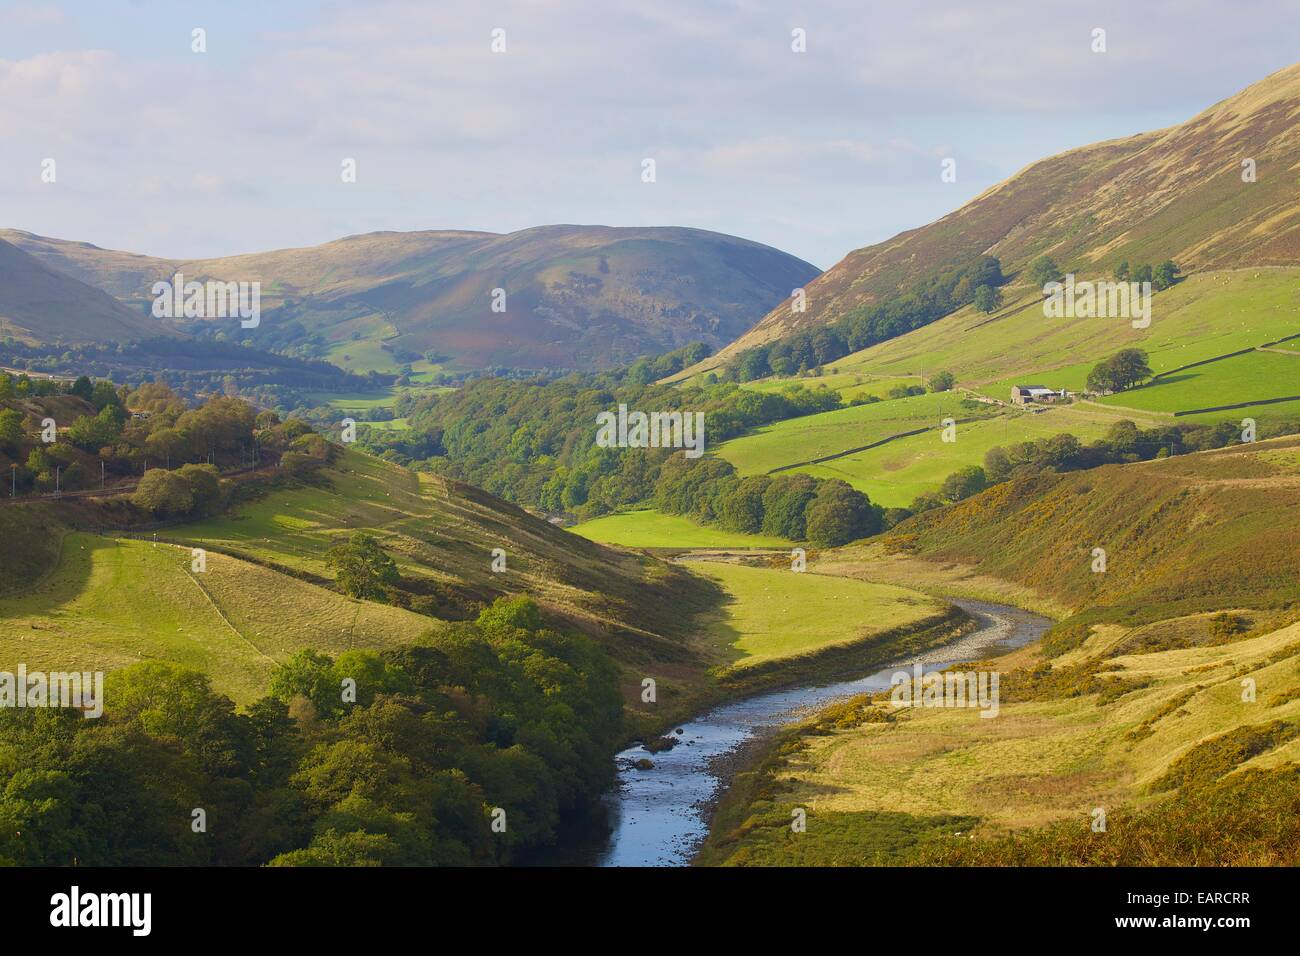 Lune Valley to become part of the Yorkshire dales and Lake District extended National Parks from August 2016. Cumbria, - Stock Image